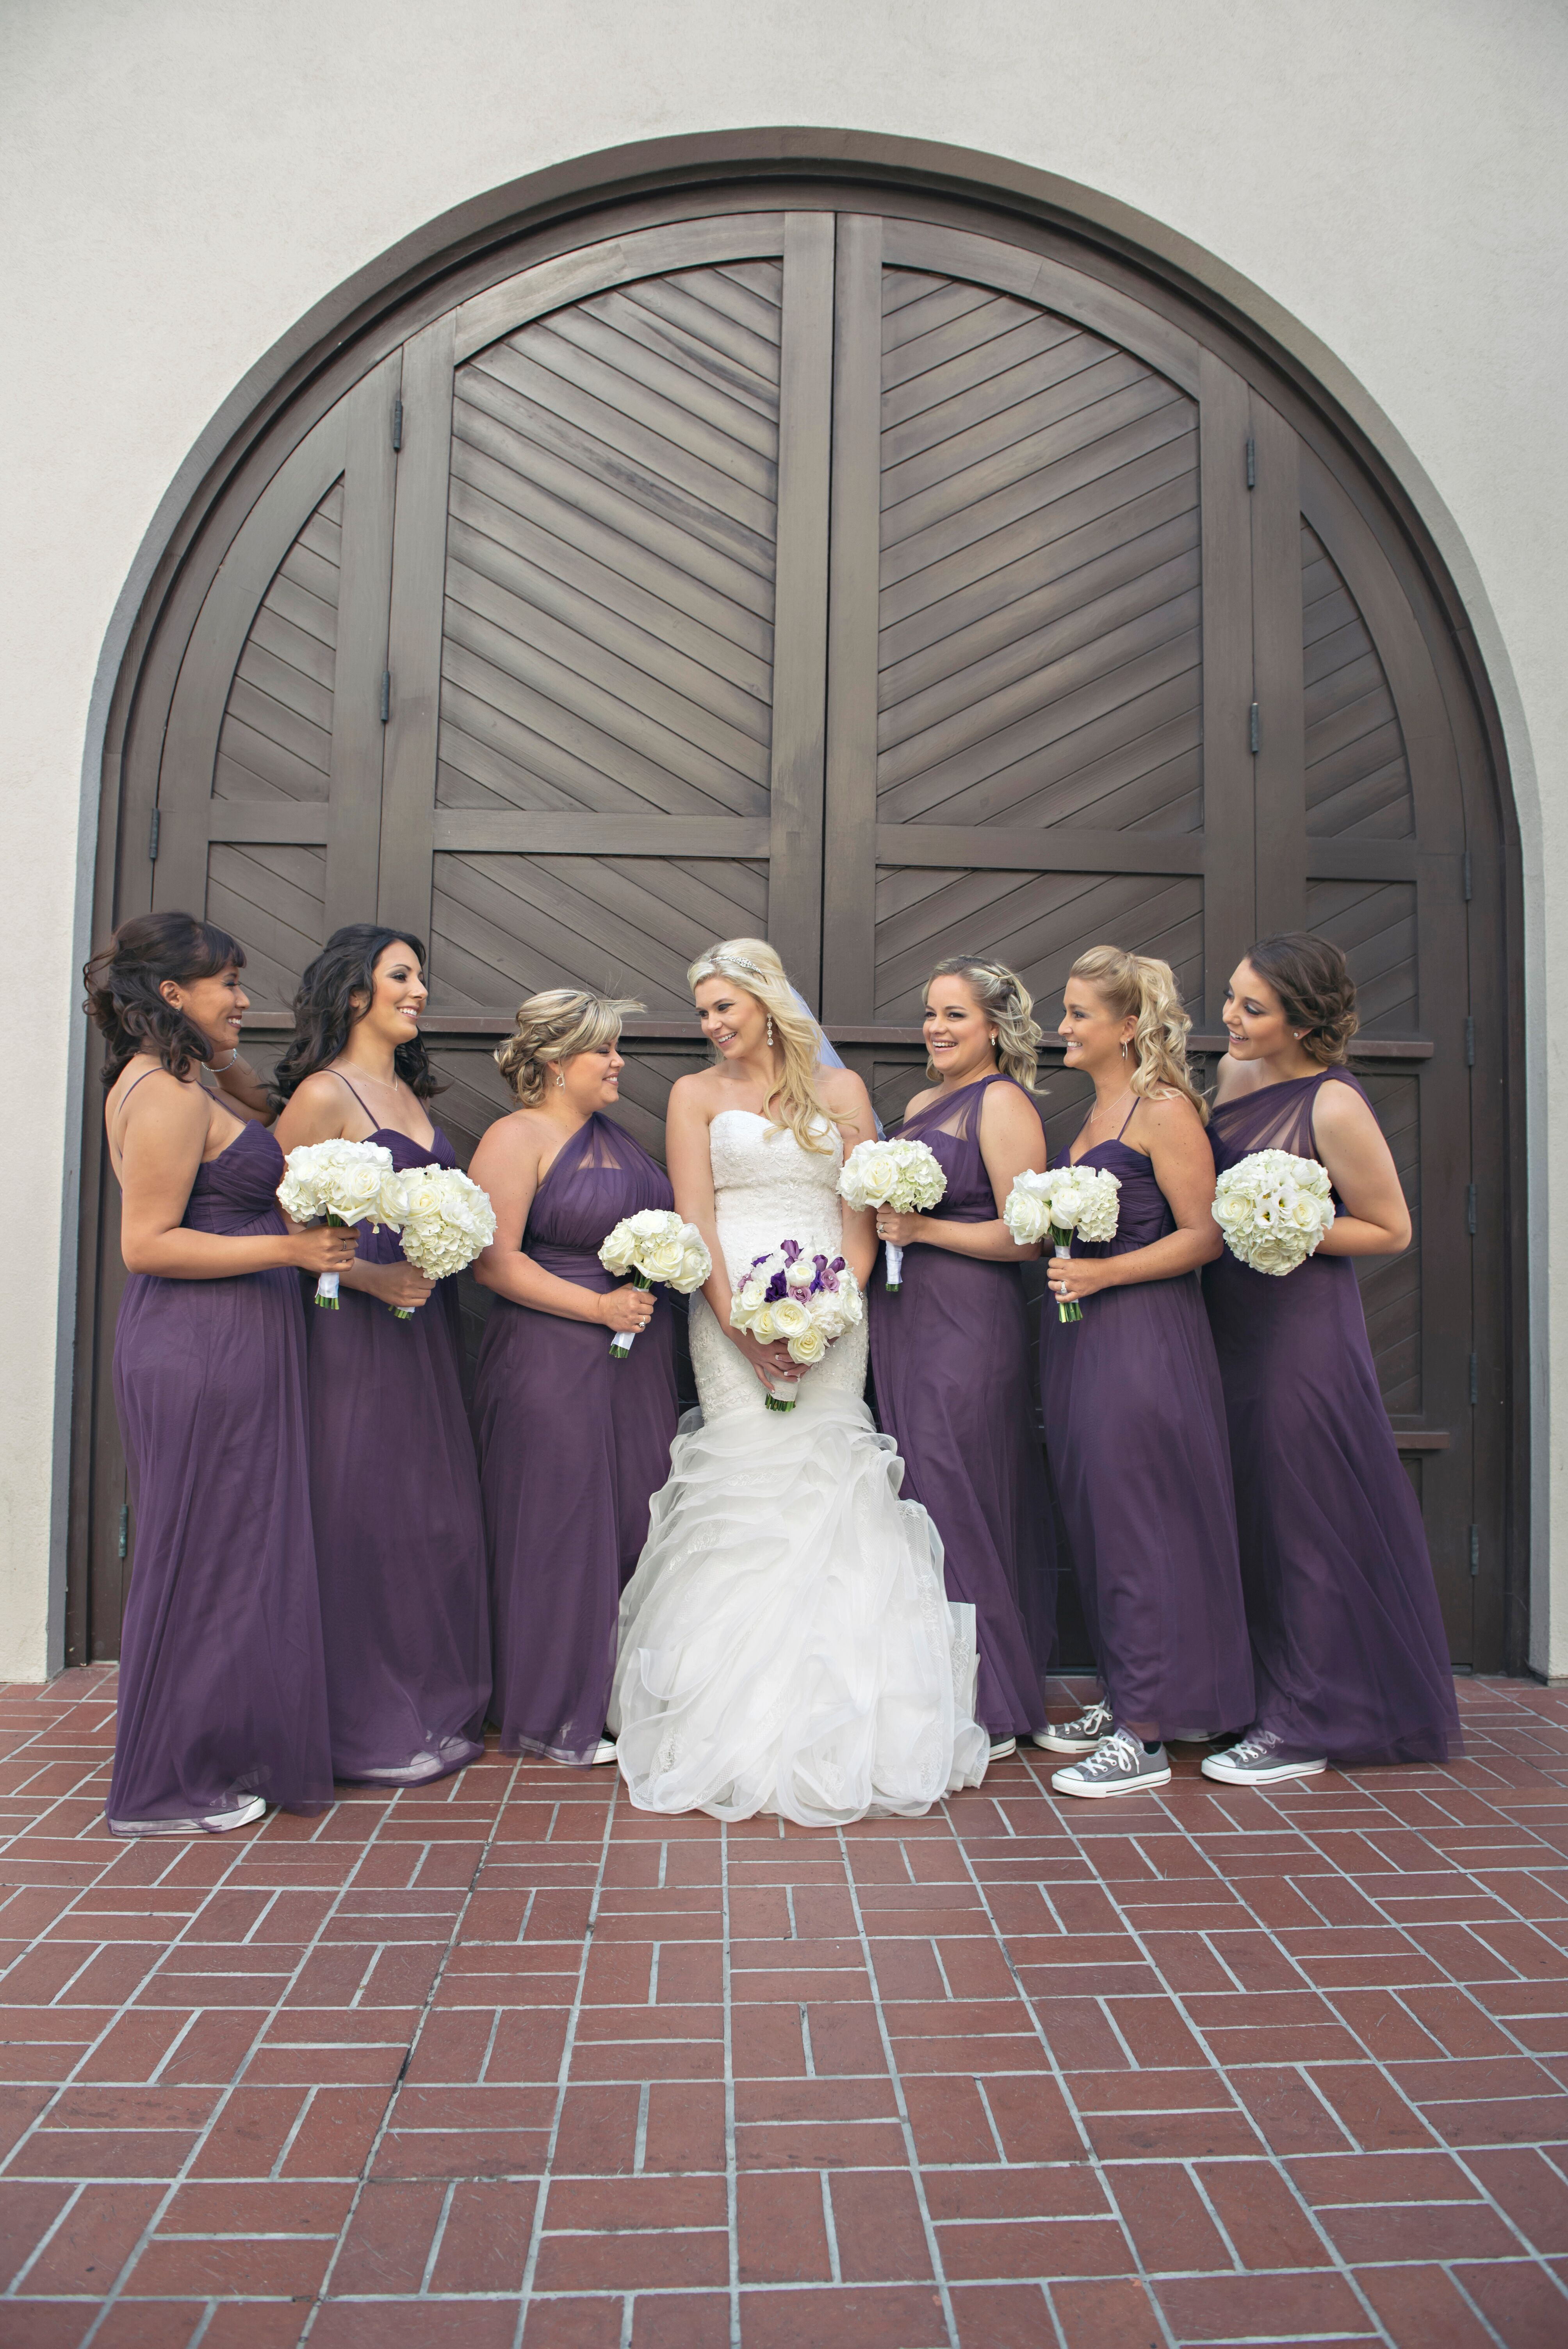 The Bridesmaids In Plum Bobbinet Dresses And Gray Converse